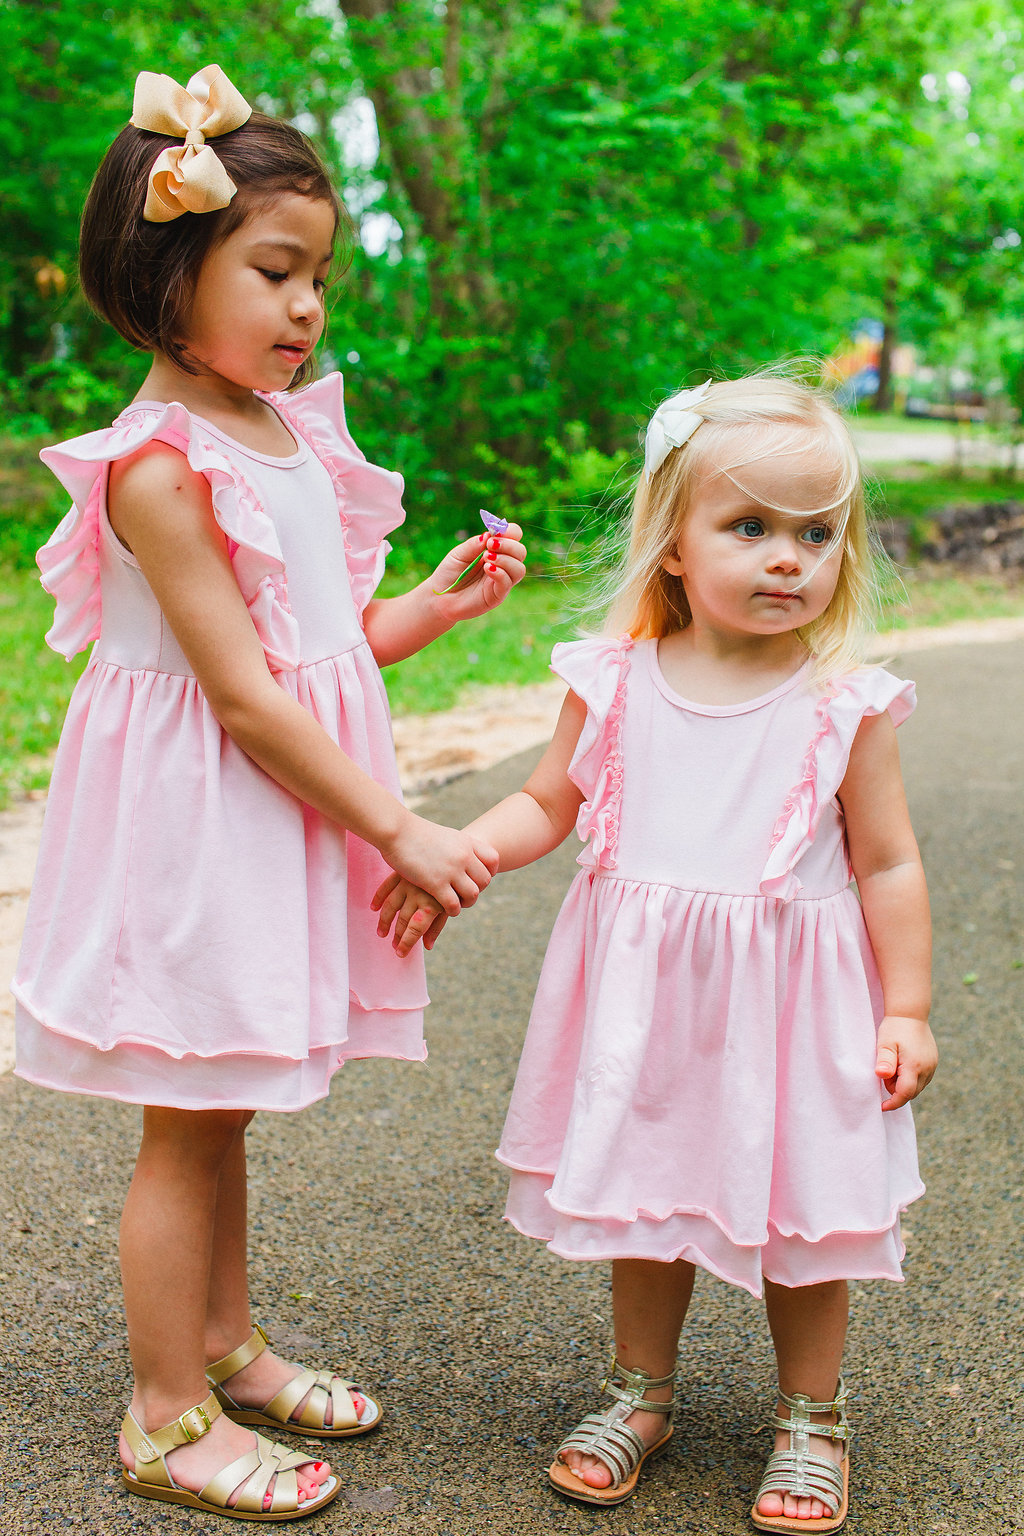 Spring and Summer dresses for girls from cuteheads. Gorgeous pink jersey dresses, now available at cuteheads.com